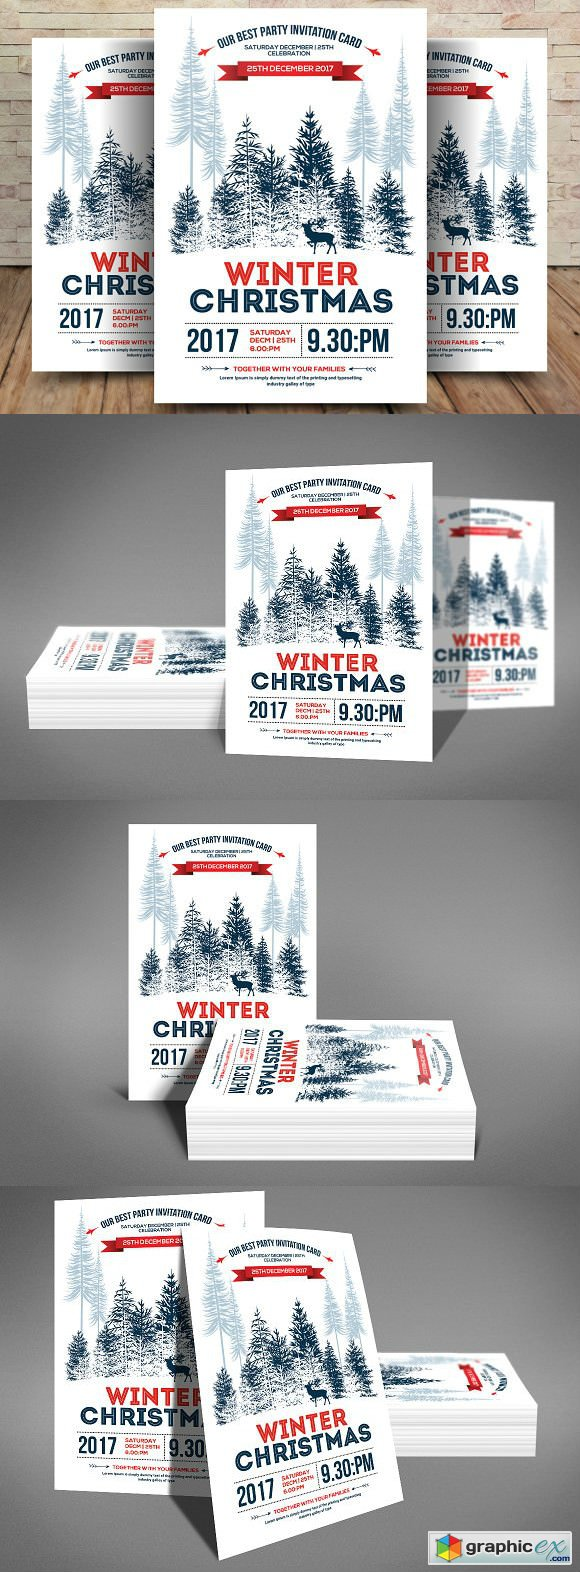 Minimal Christmas Winter Flyer